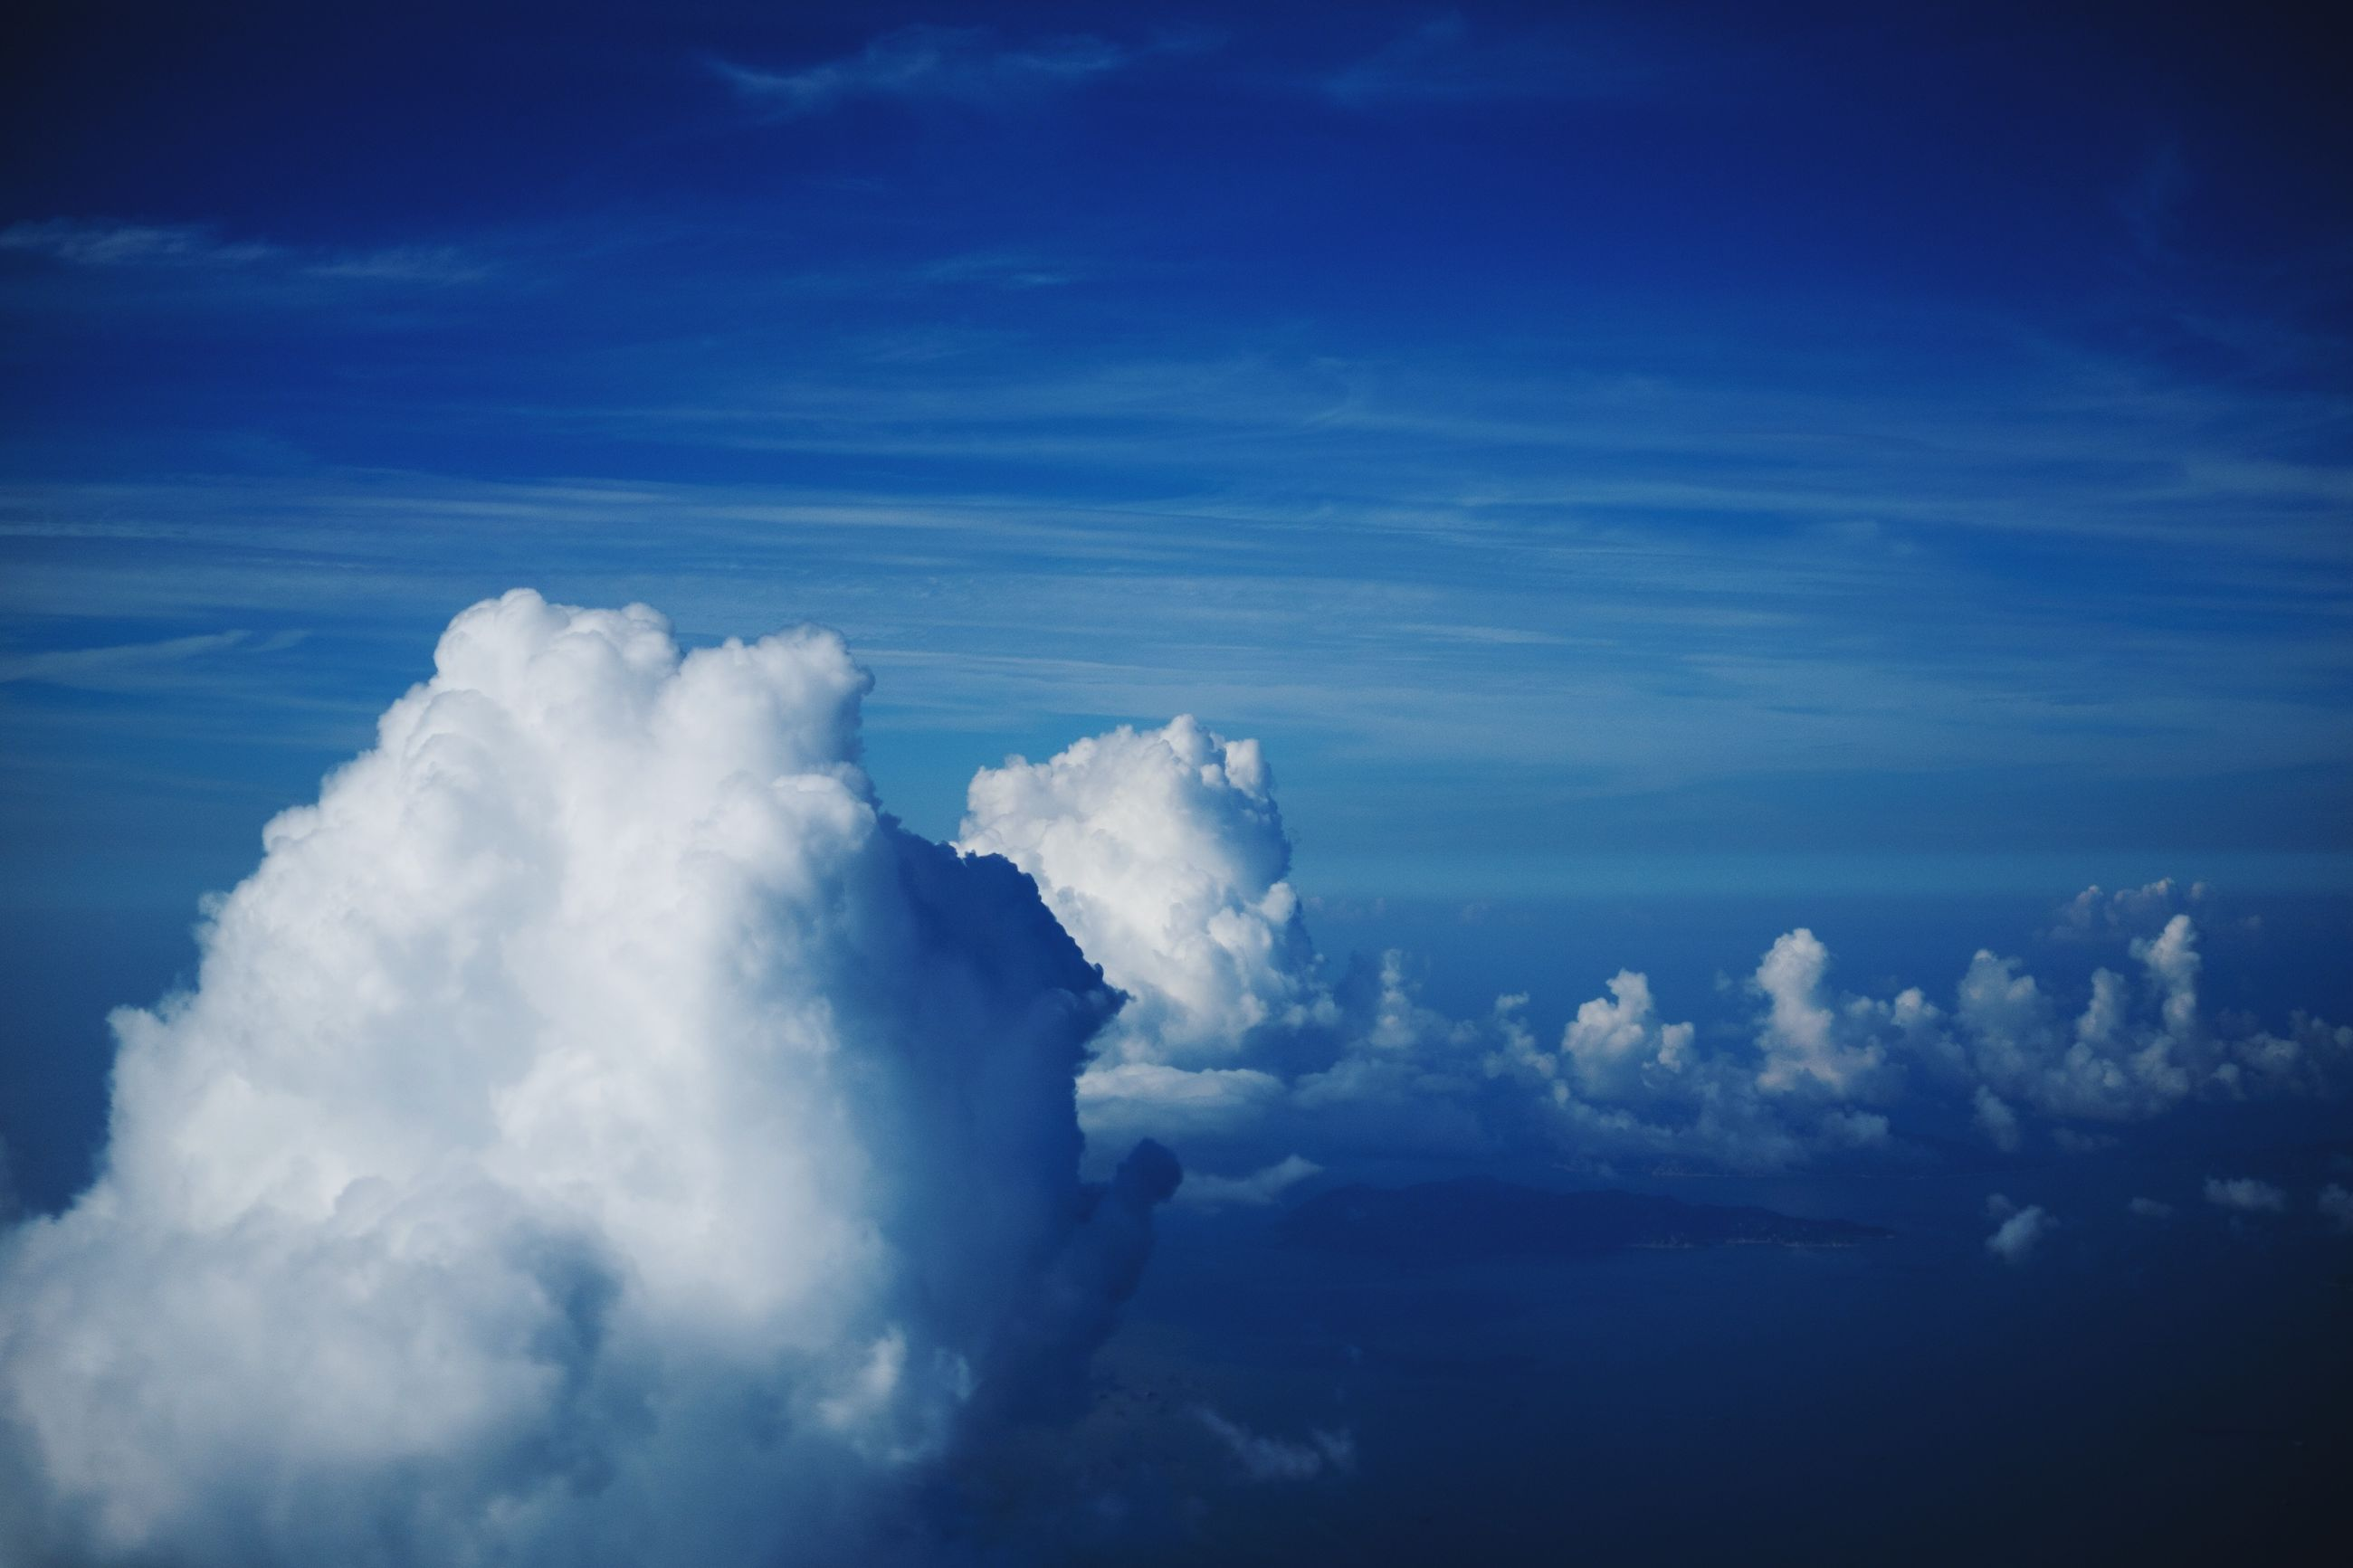 beauty in nature, scenics, sky, blue, tranquility, tranquil scene, nature, cloud - sky, cloudscape, white color, sky only, cloud, idyllic, majestic, fluffy, cloudy, no people, day, low angle view, outdoors